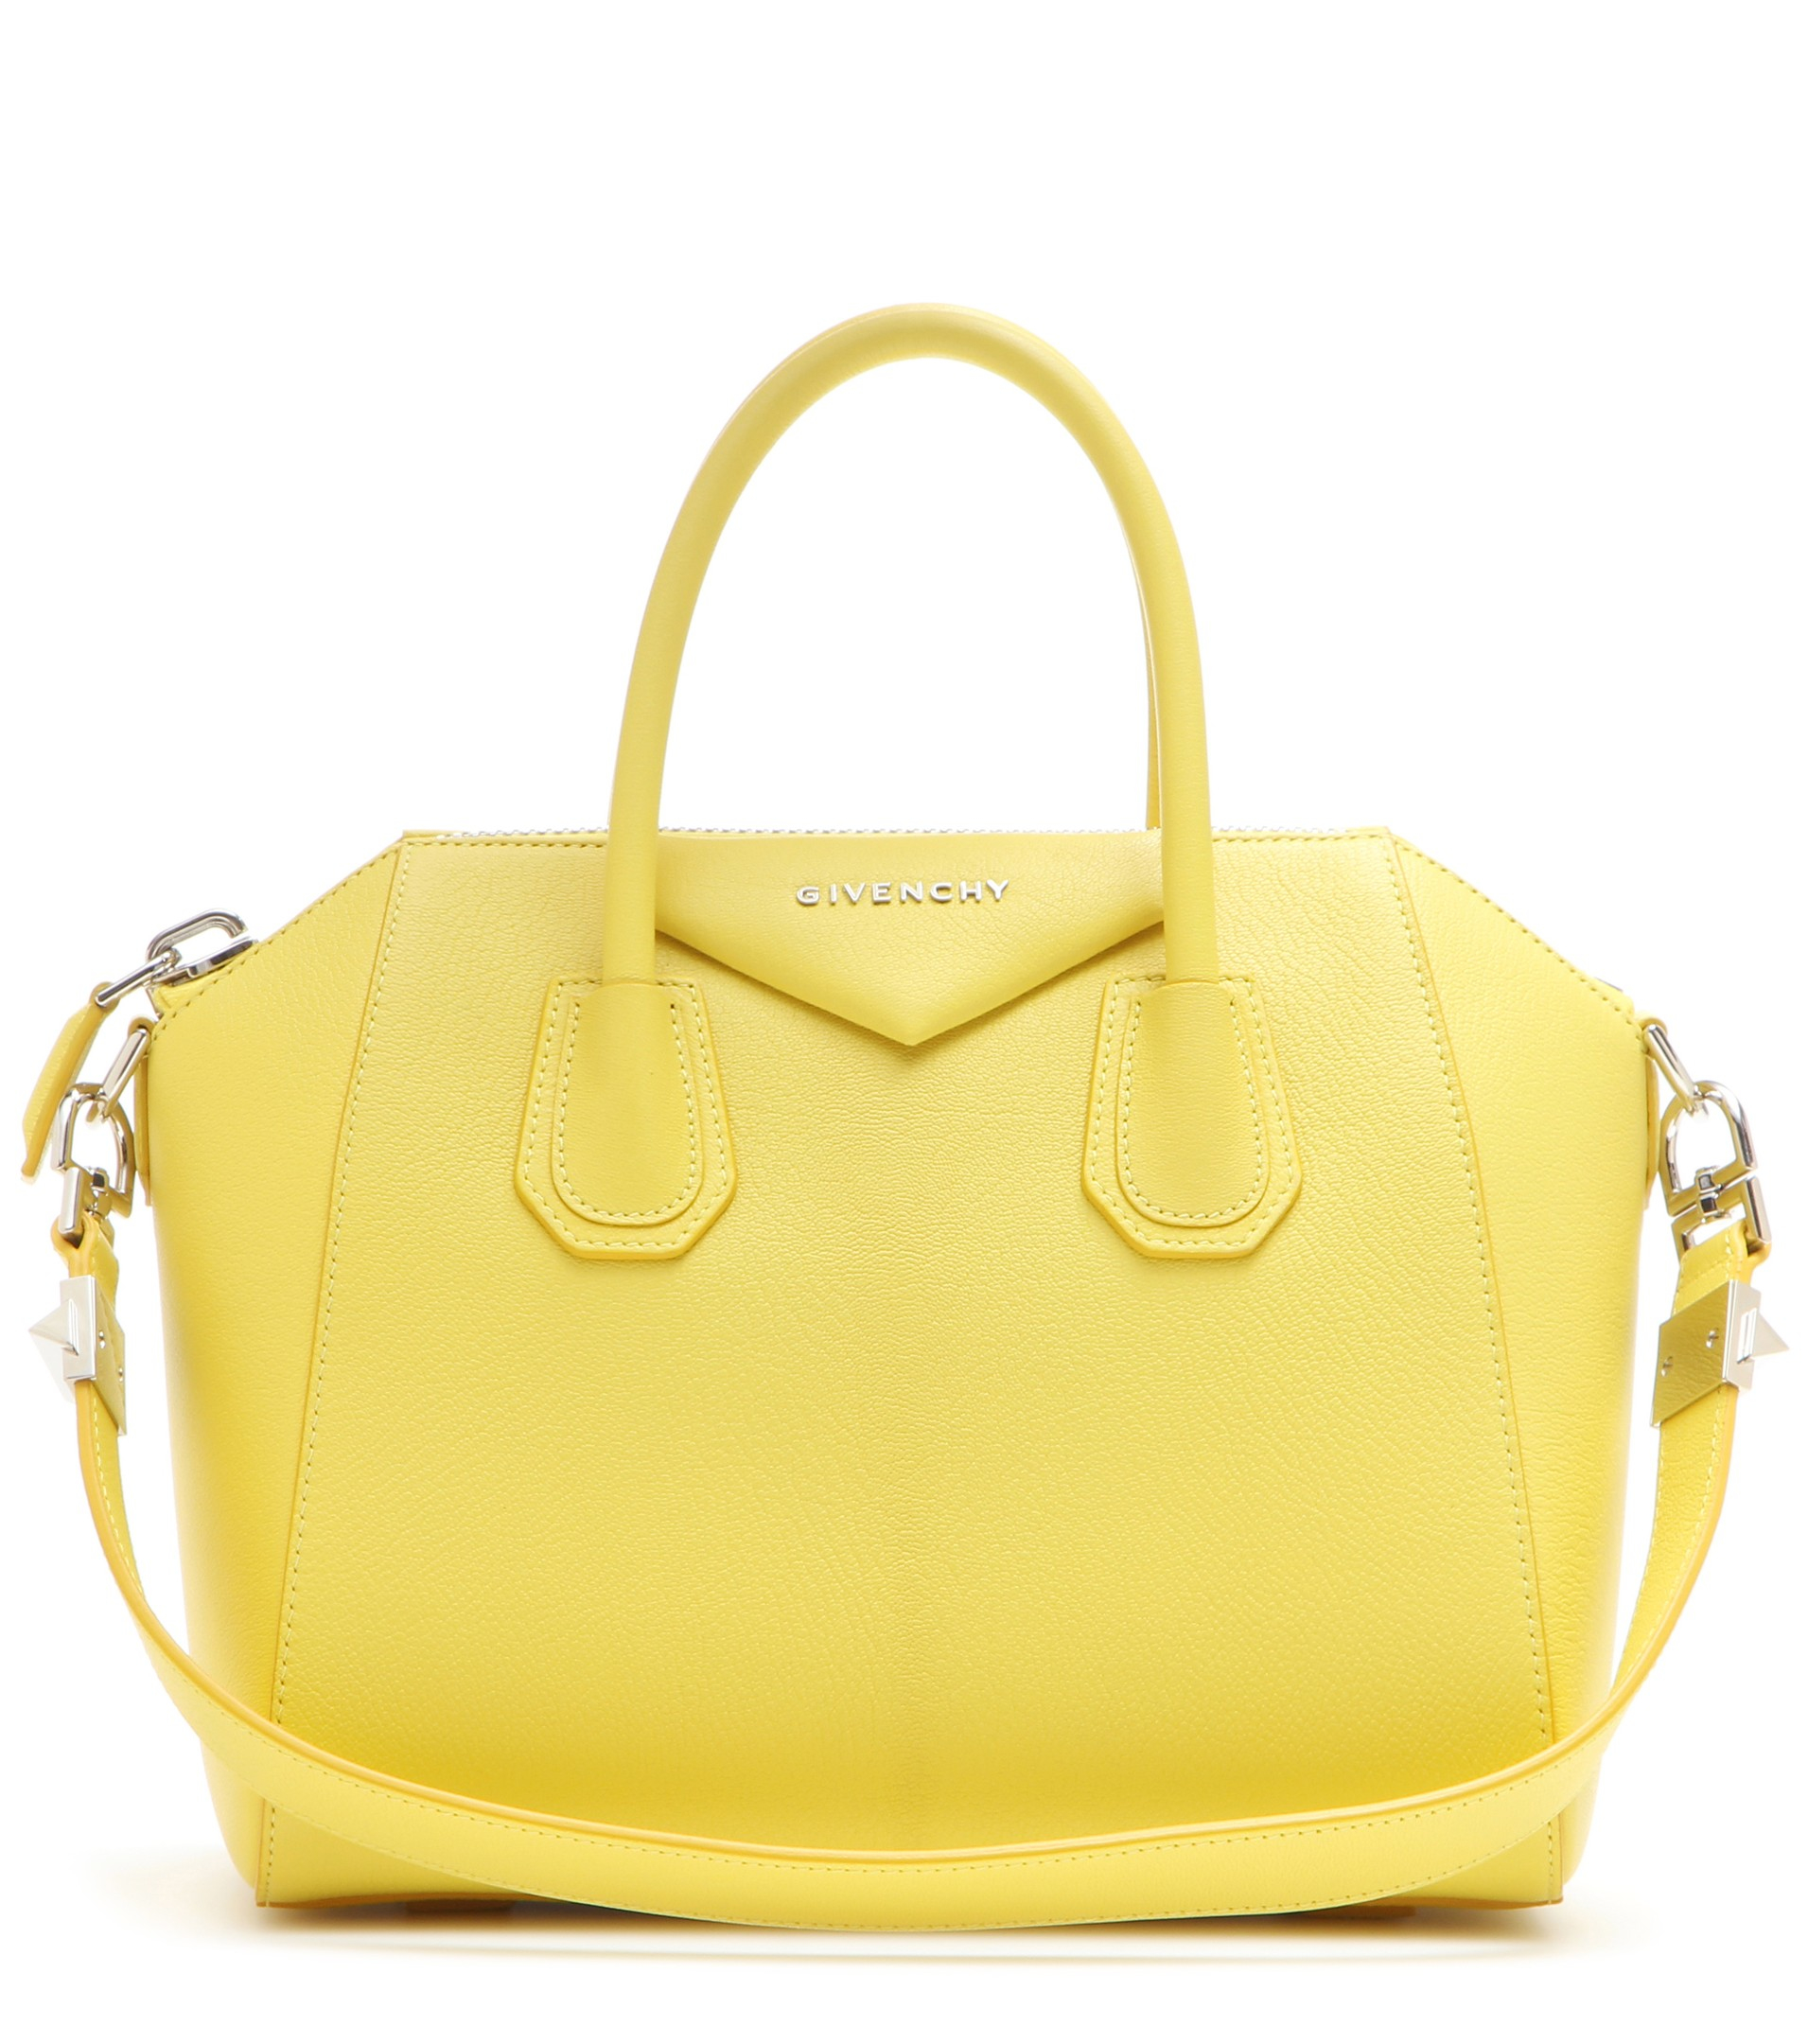 48cd3d1eb5 Lyst - Givenchy Antigona Small Leather Tote in Yellow